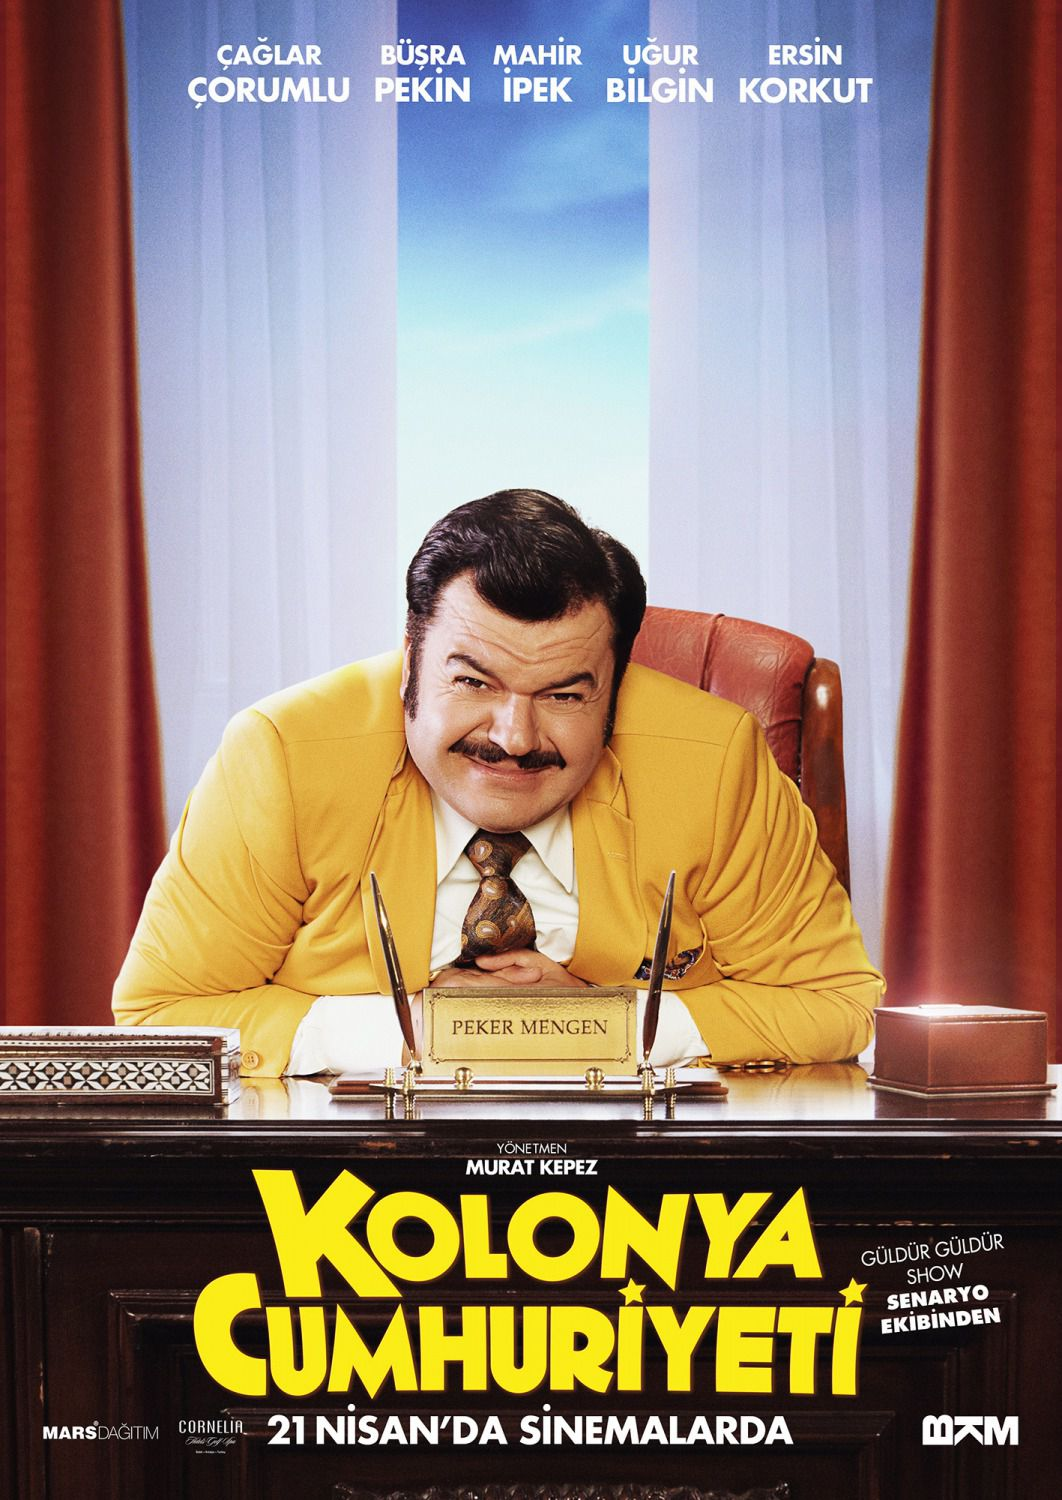 Kolonya Cumhuriyeti - Repubblica di Colonia - Republic of Cologne - film poster